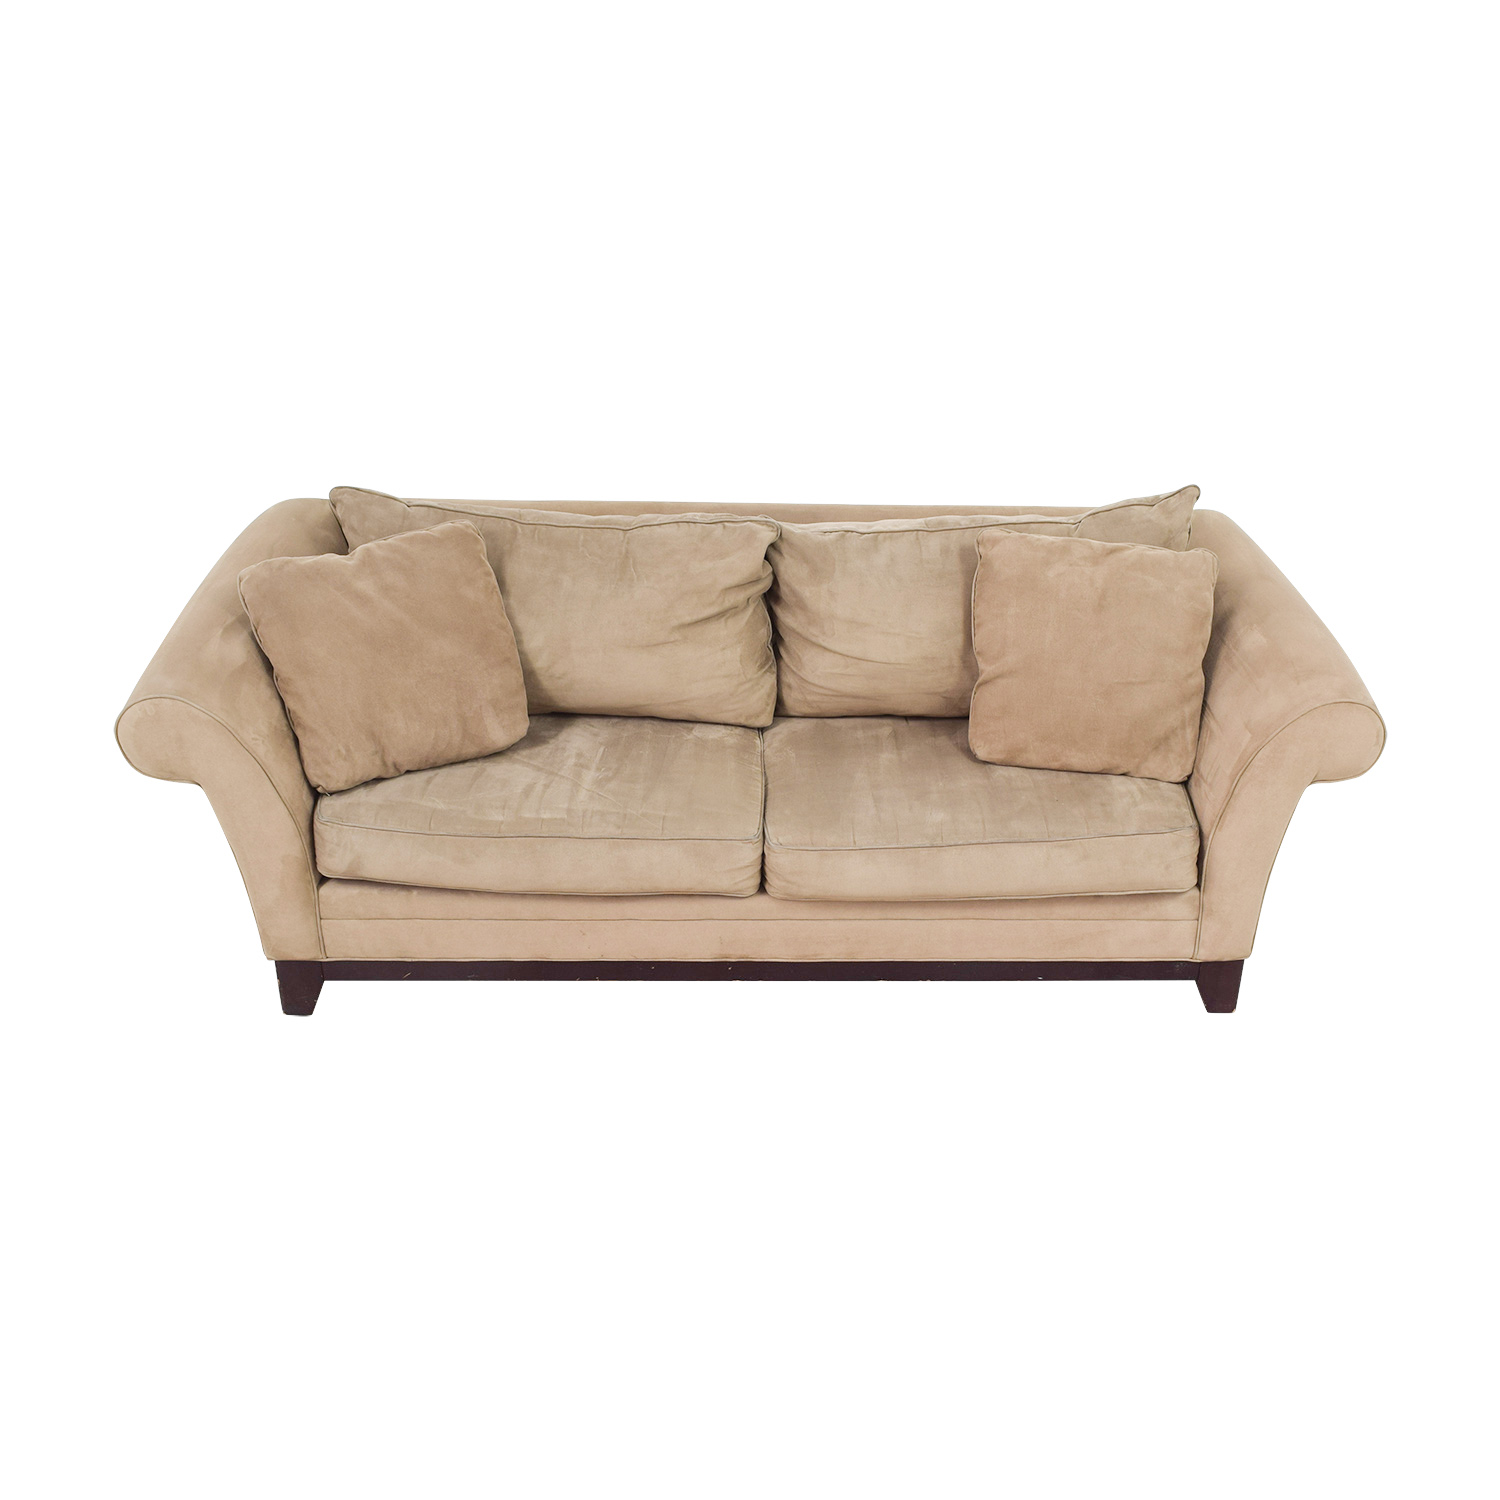 bauhaus sofas cama brown leather sofa bed debenhams kreiss rolled arm giverny chaise by